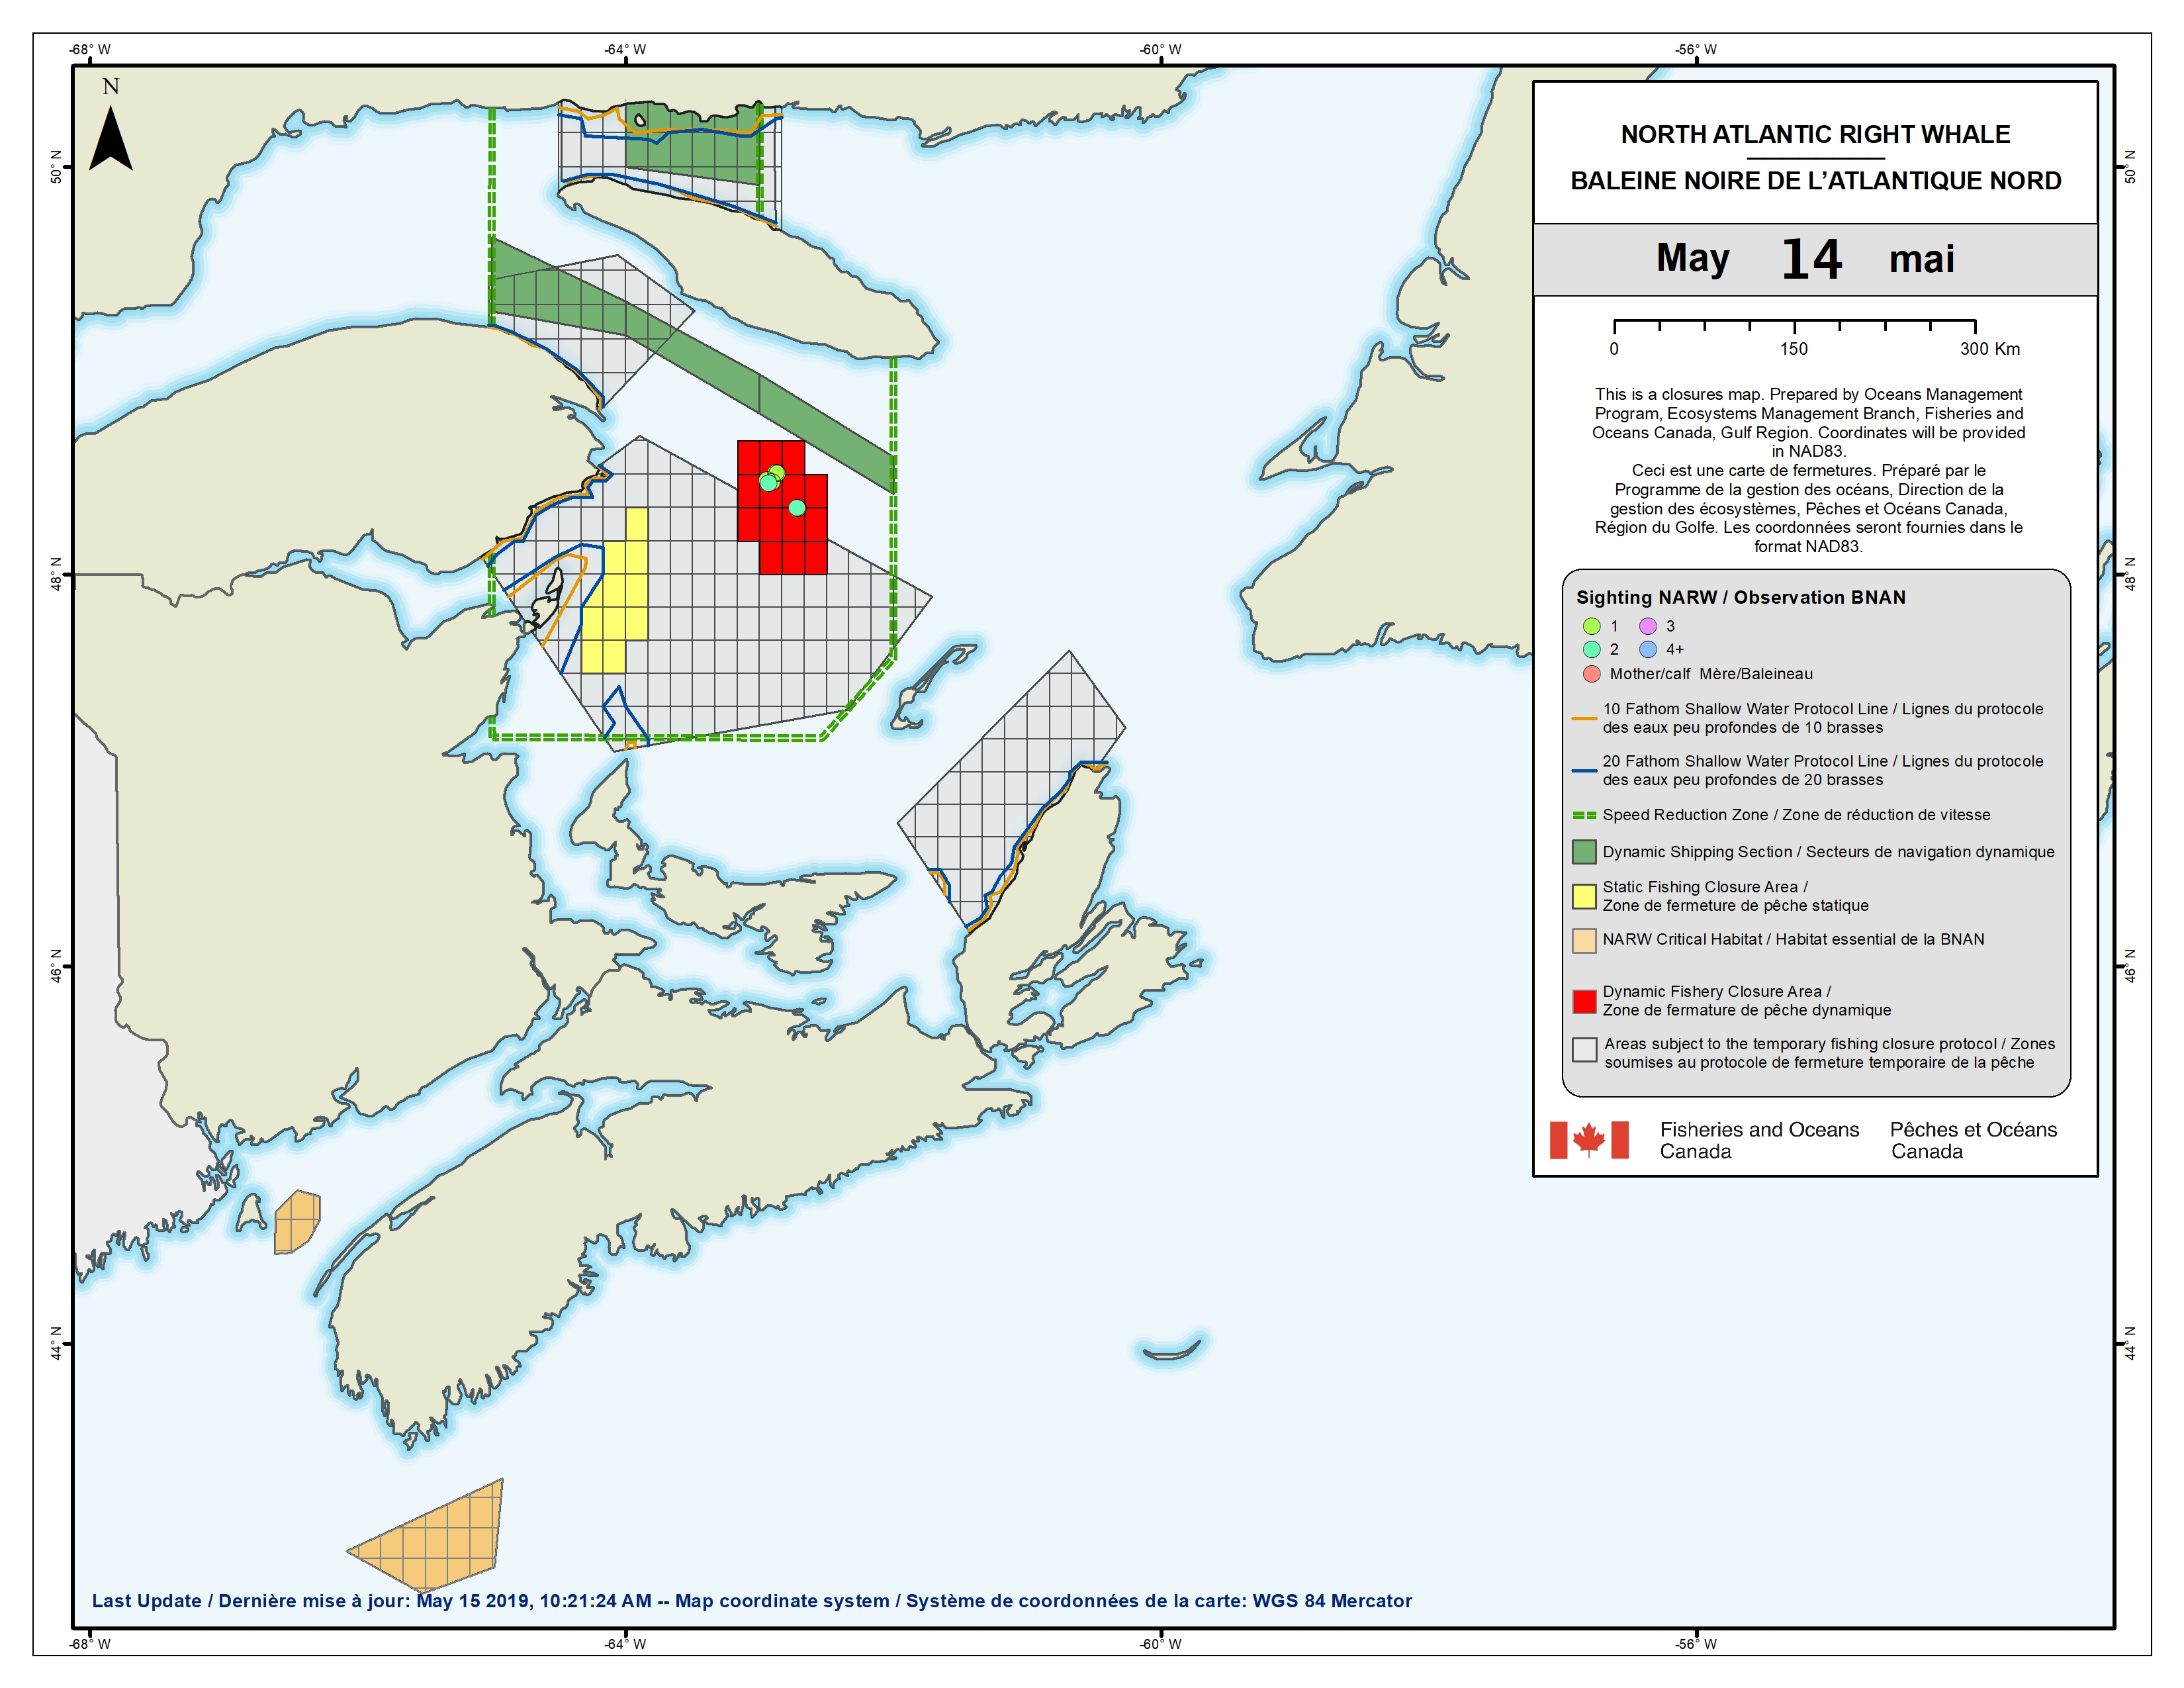 DFO Temporarily Closes Fishing Areas Due to Presence of North Atlantic Right Whales